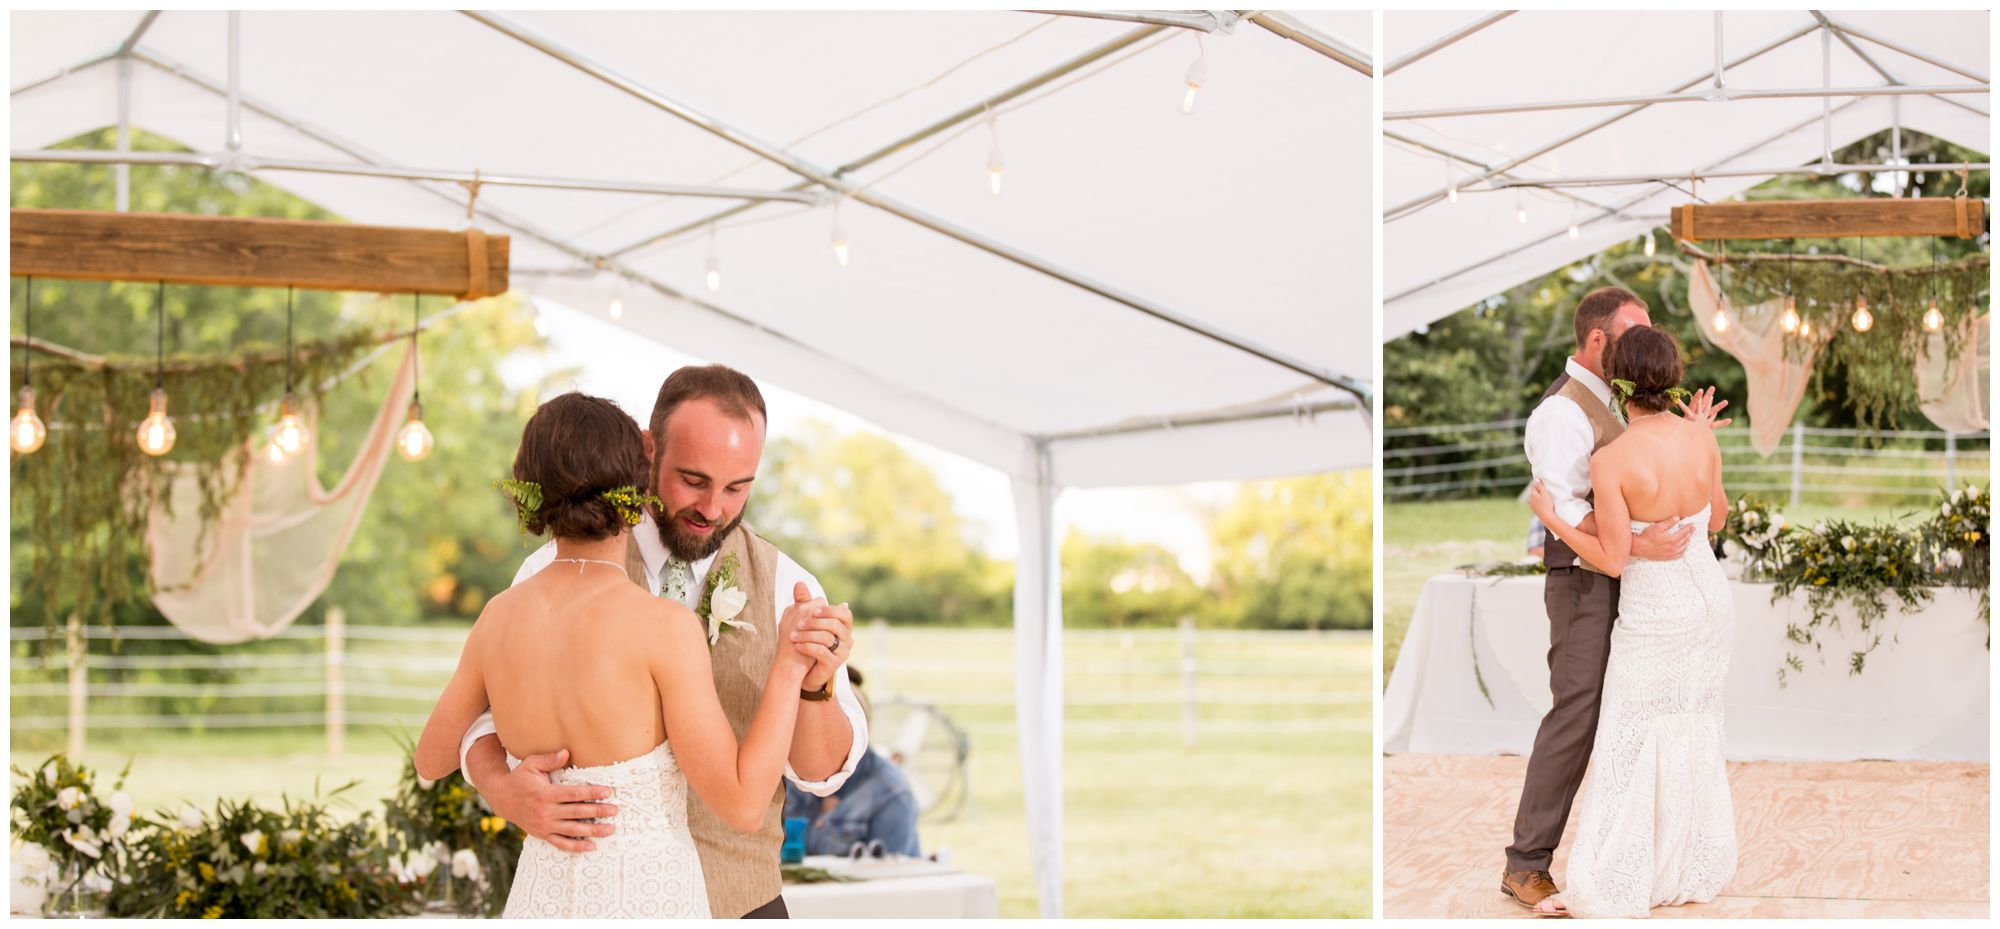 bride and groom share first dance under tent at Indianapolis backyard wedding reception